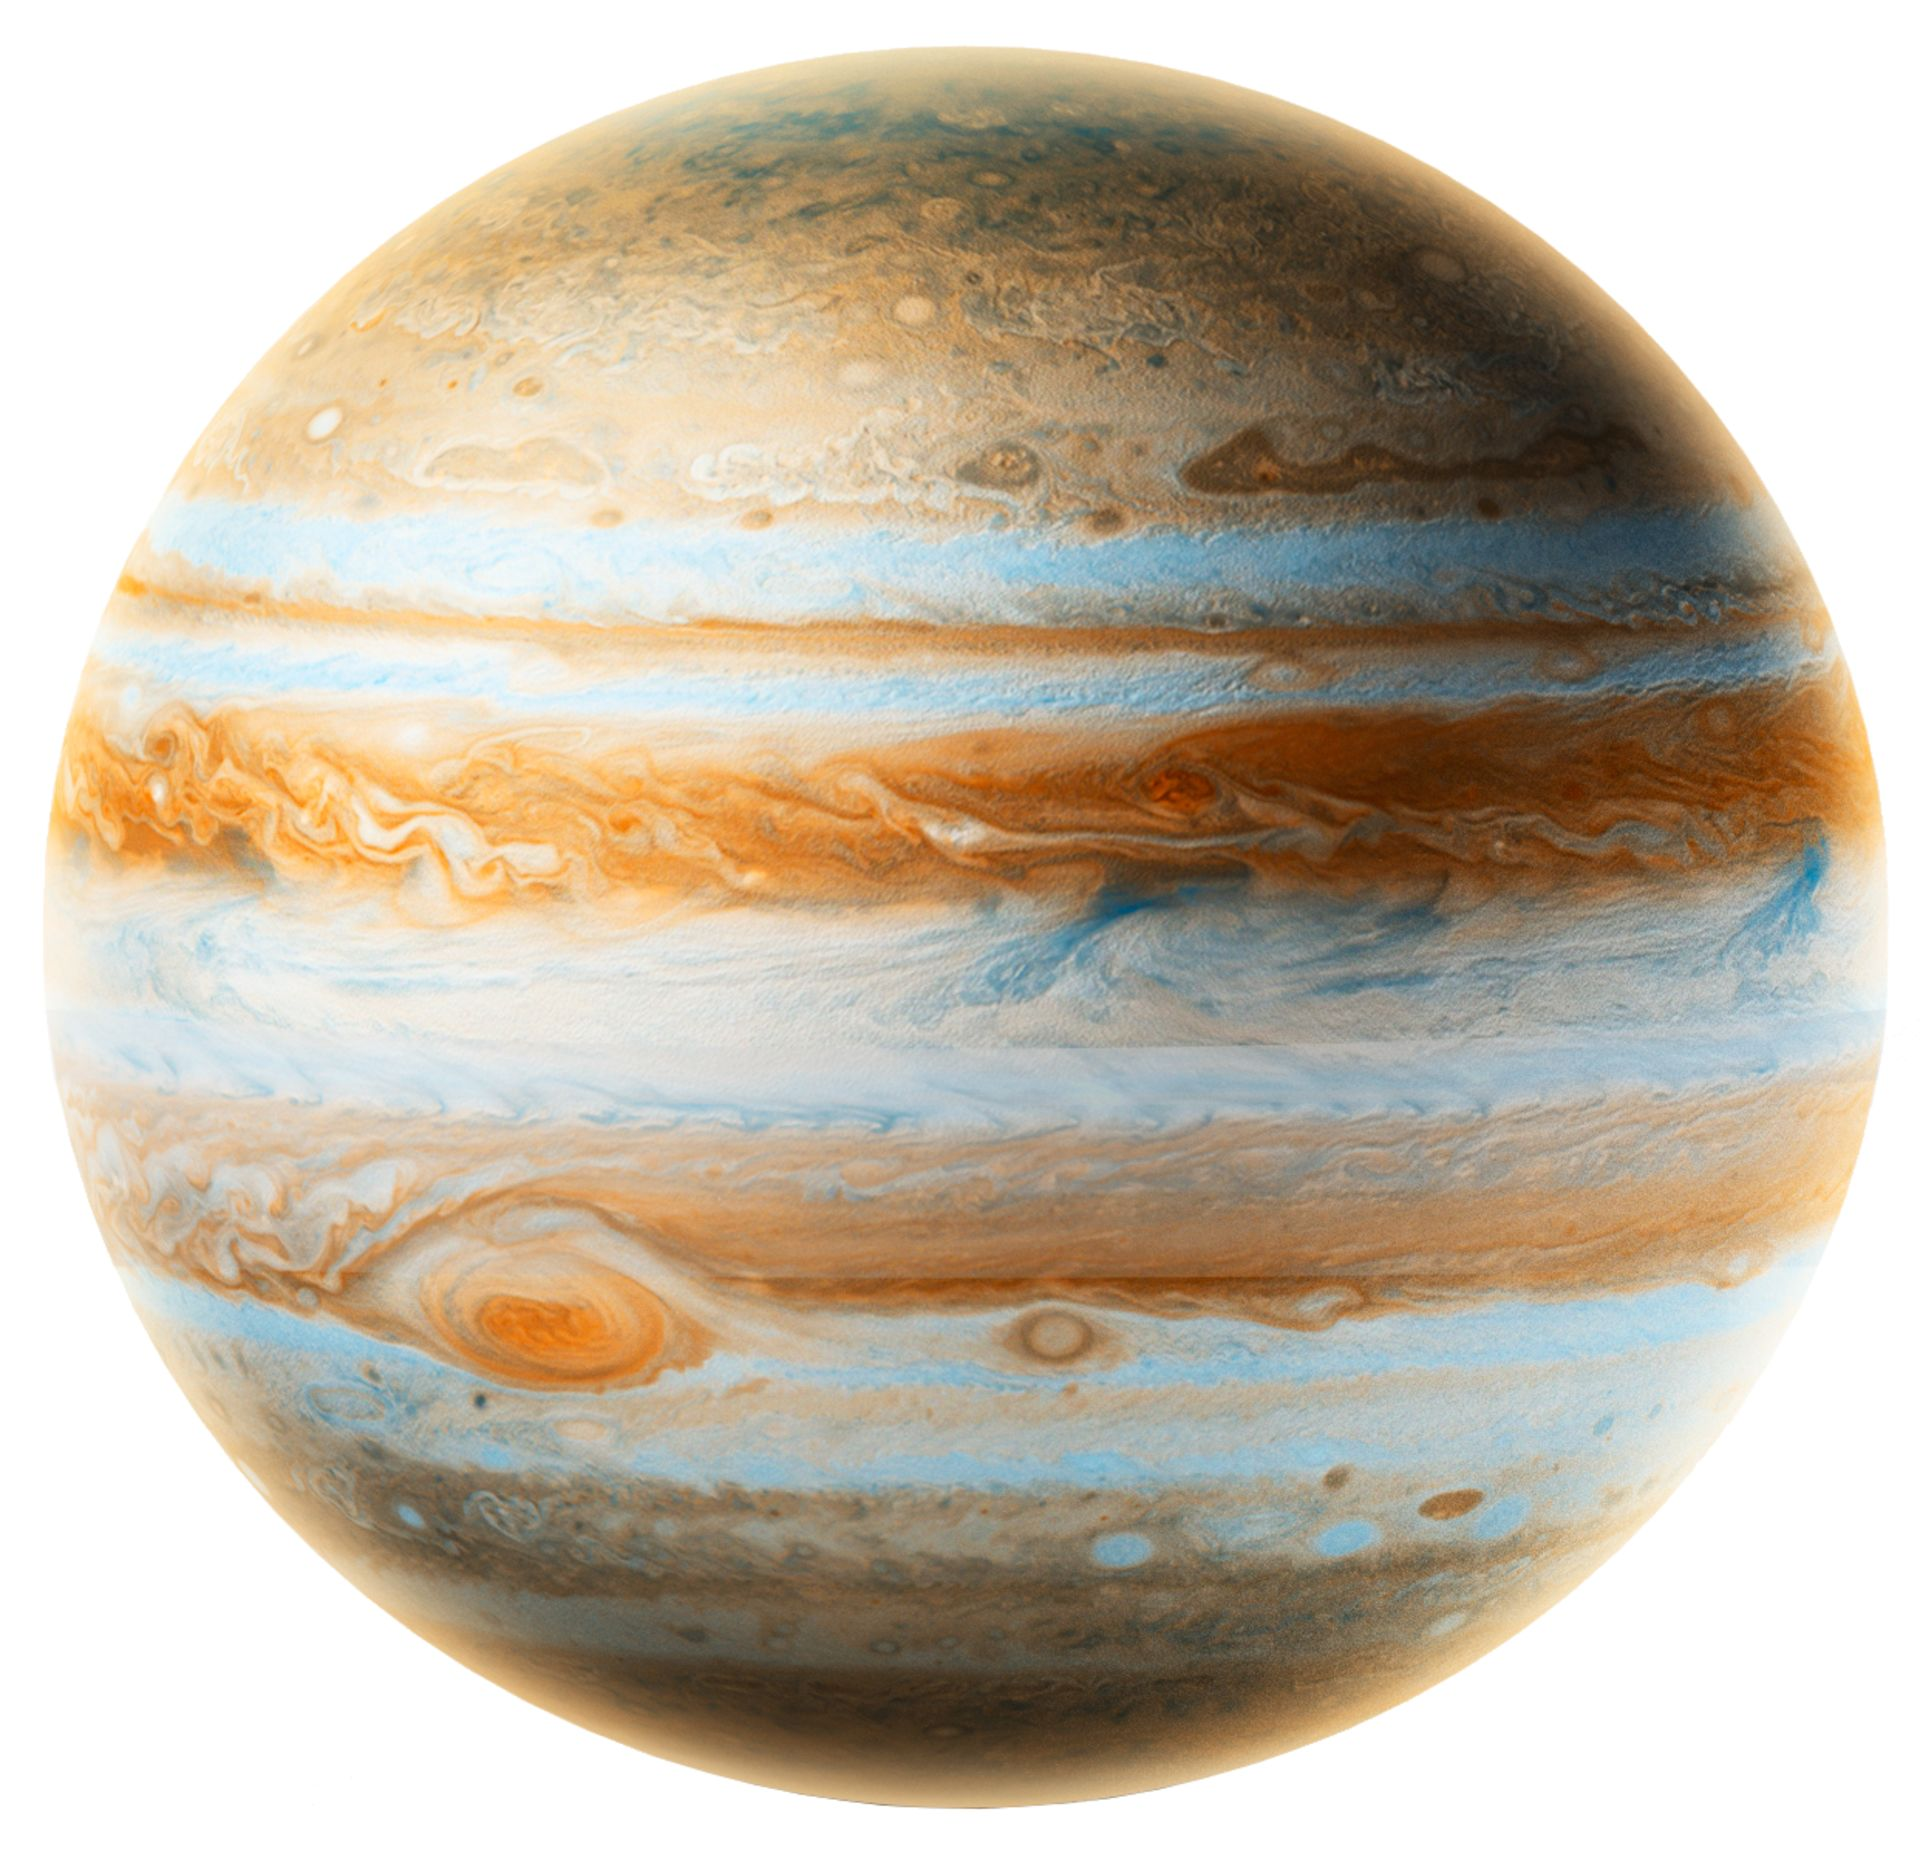 jupiter facts for kids jupiter planet facts dk find out